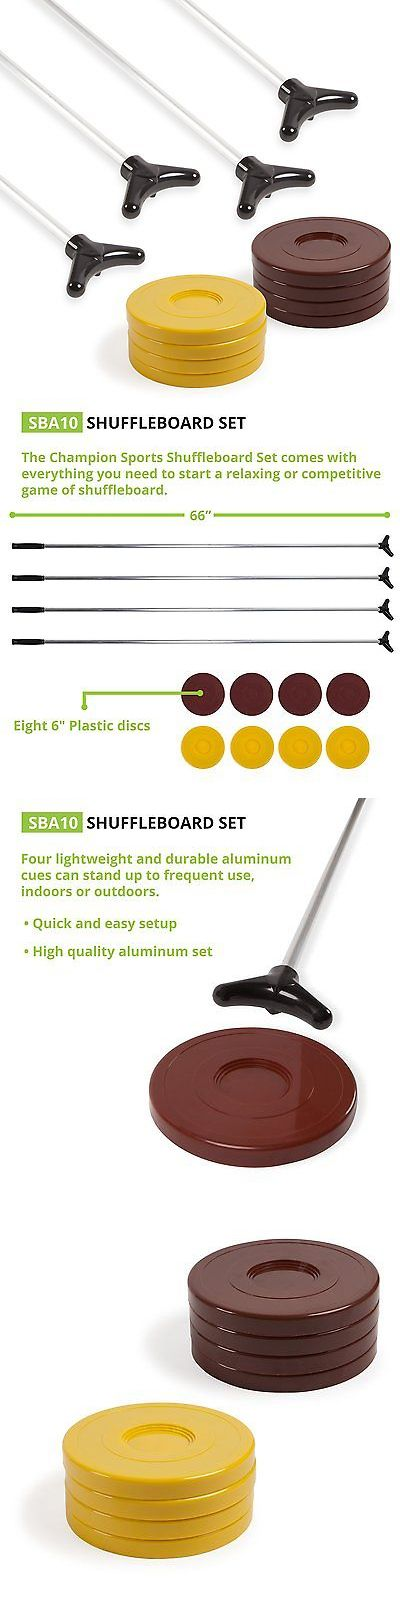 Shuffleboard 79777: Indoor Outdoor Shuffleboard Cue Puck Set Four 66 Lightweight Aluminum Cues New -> BUY IT NOW ONLY: $73.79 on eBay!